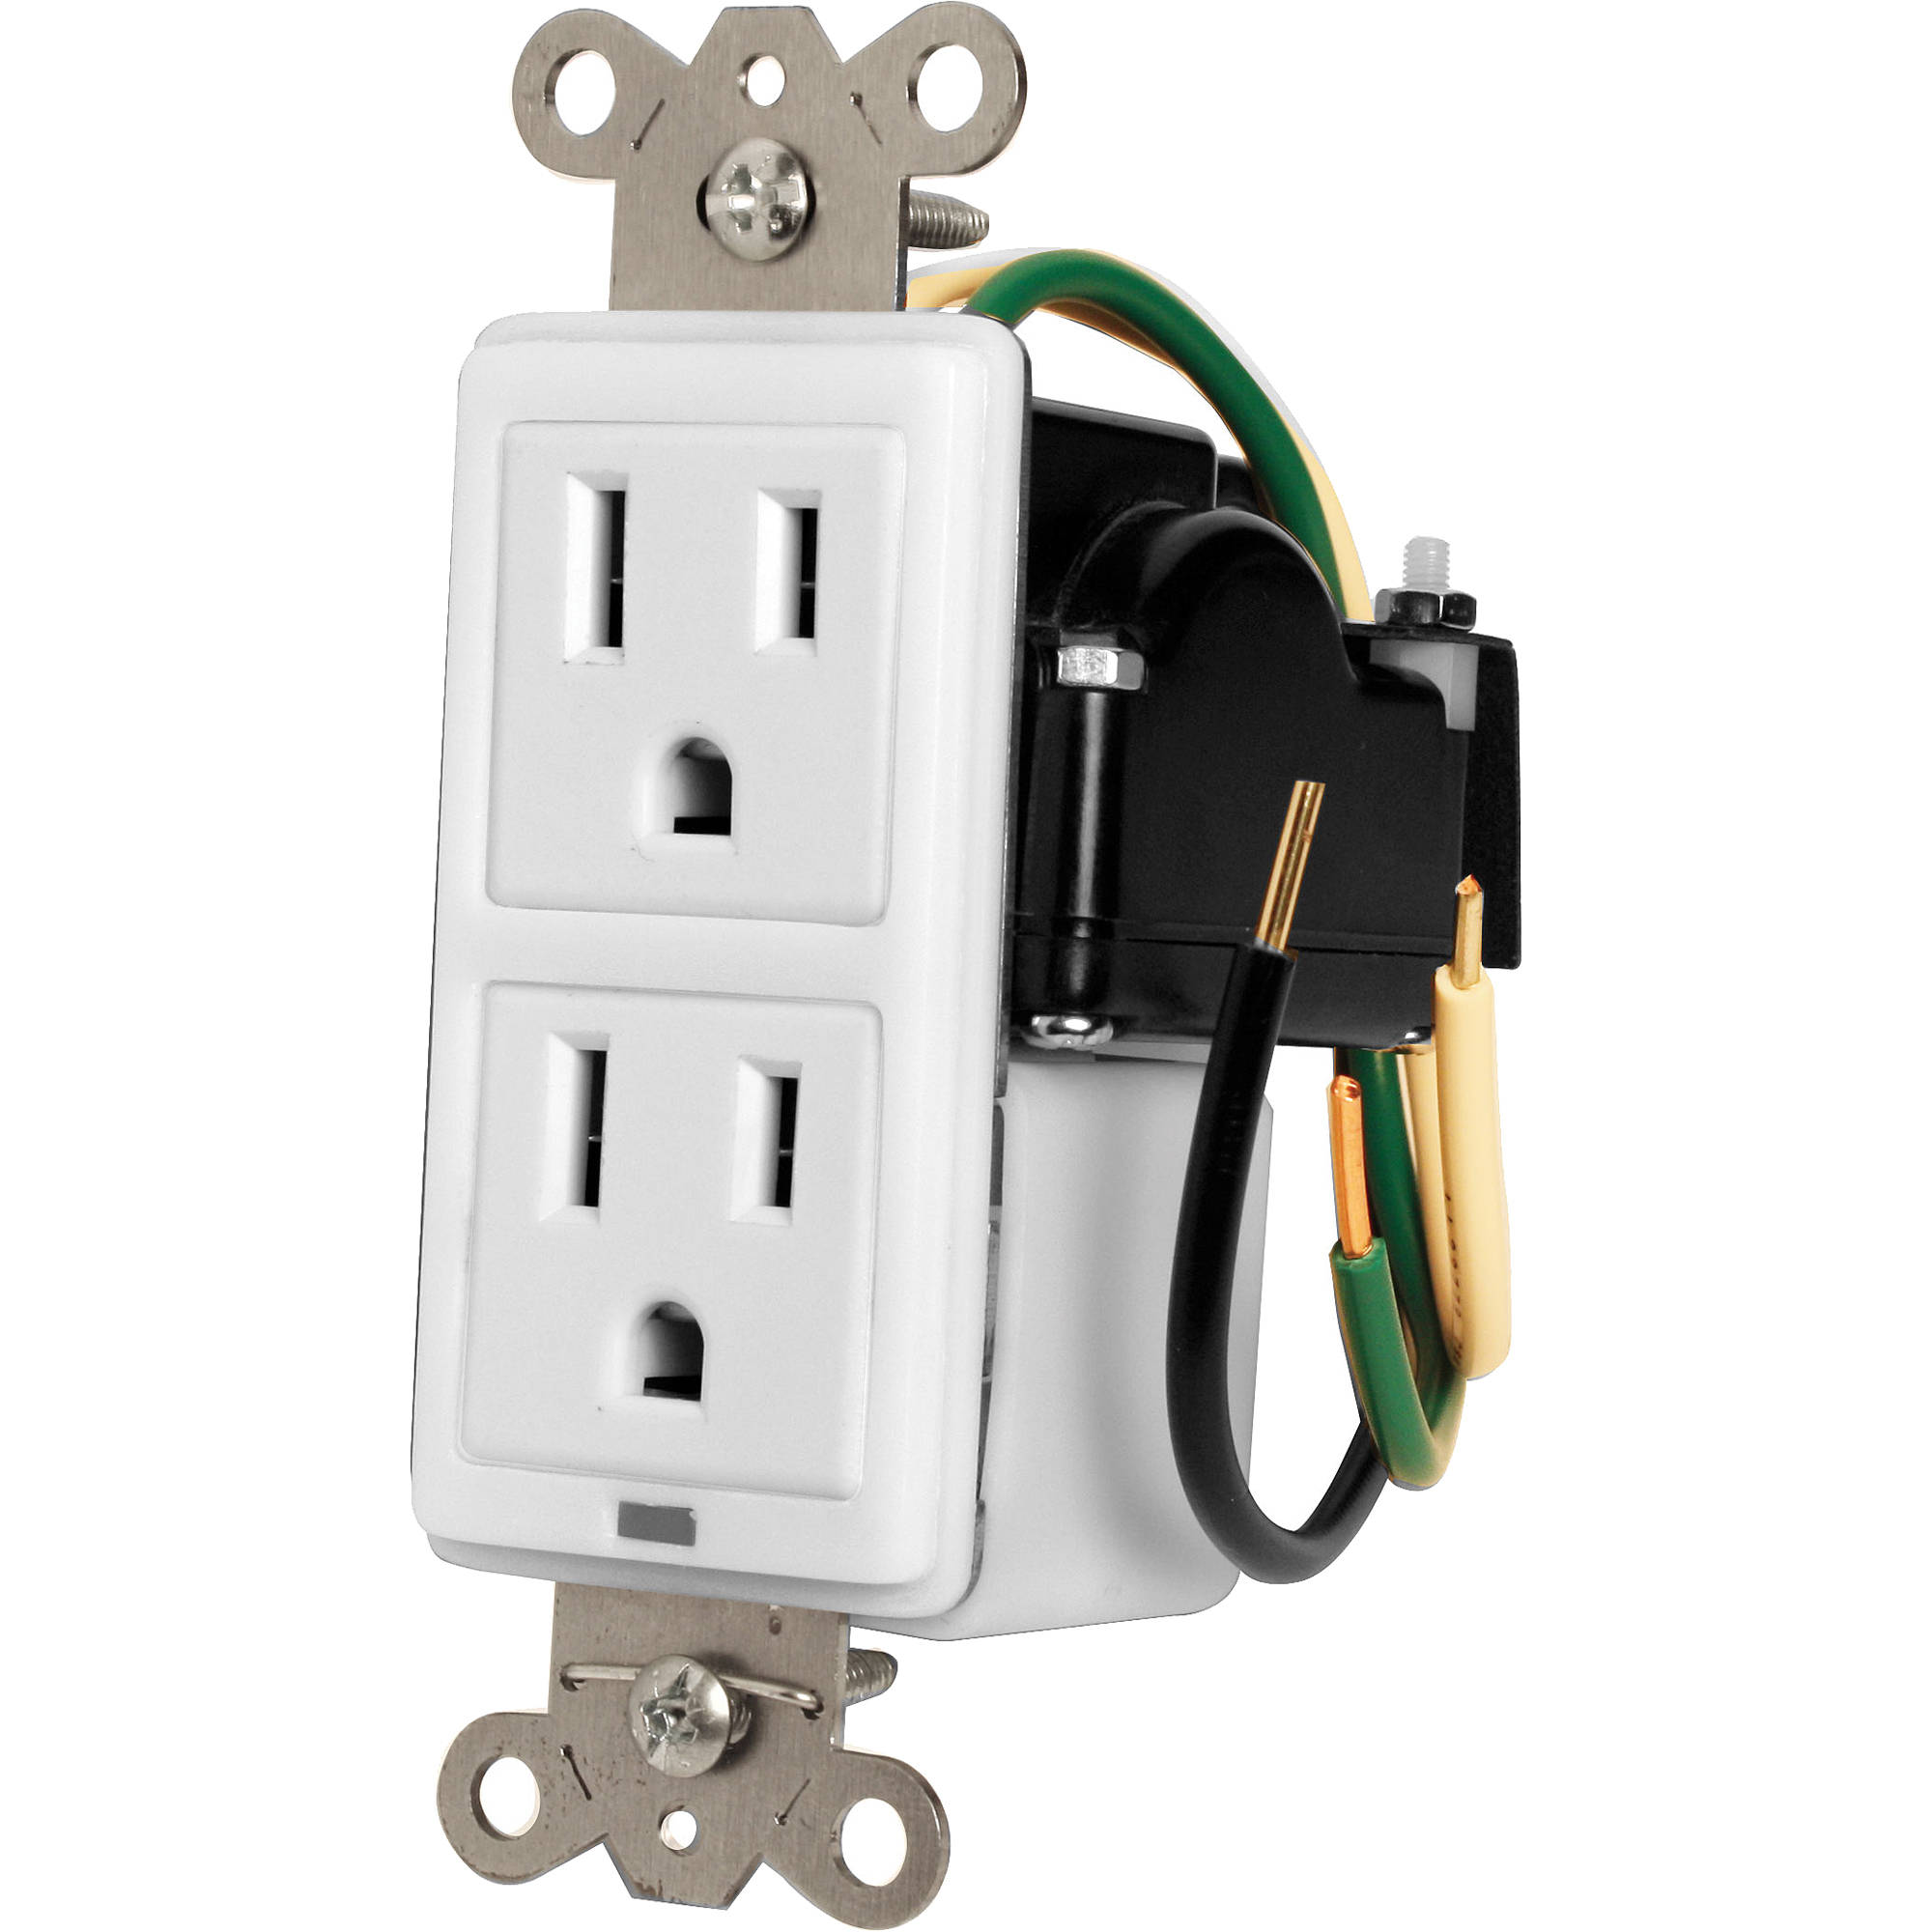 Furman Miw Surge In Wall Protection System 1g Electrical Wiring Behind Walls